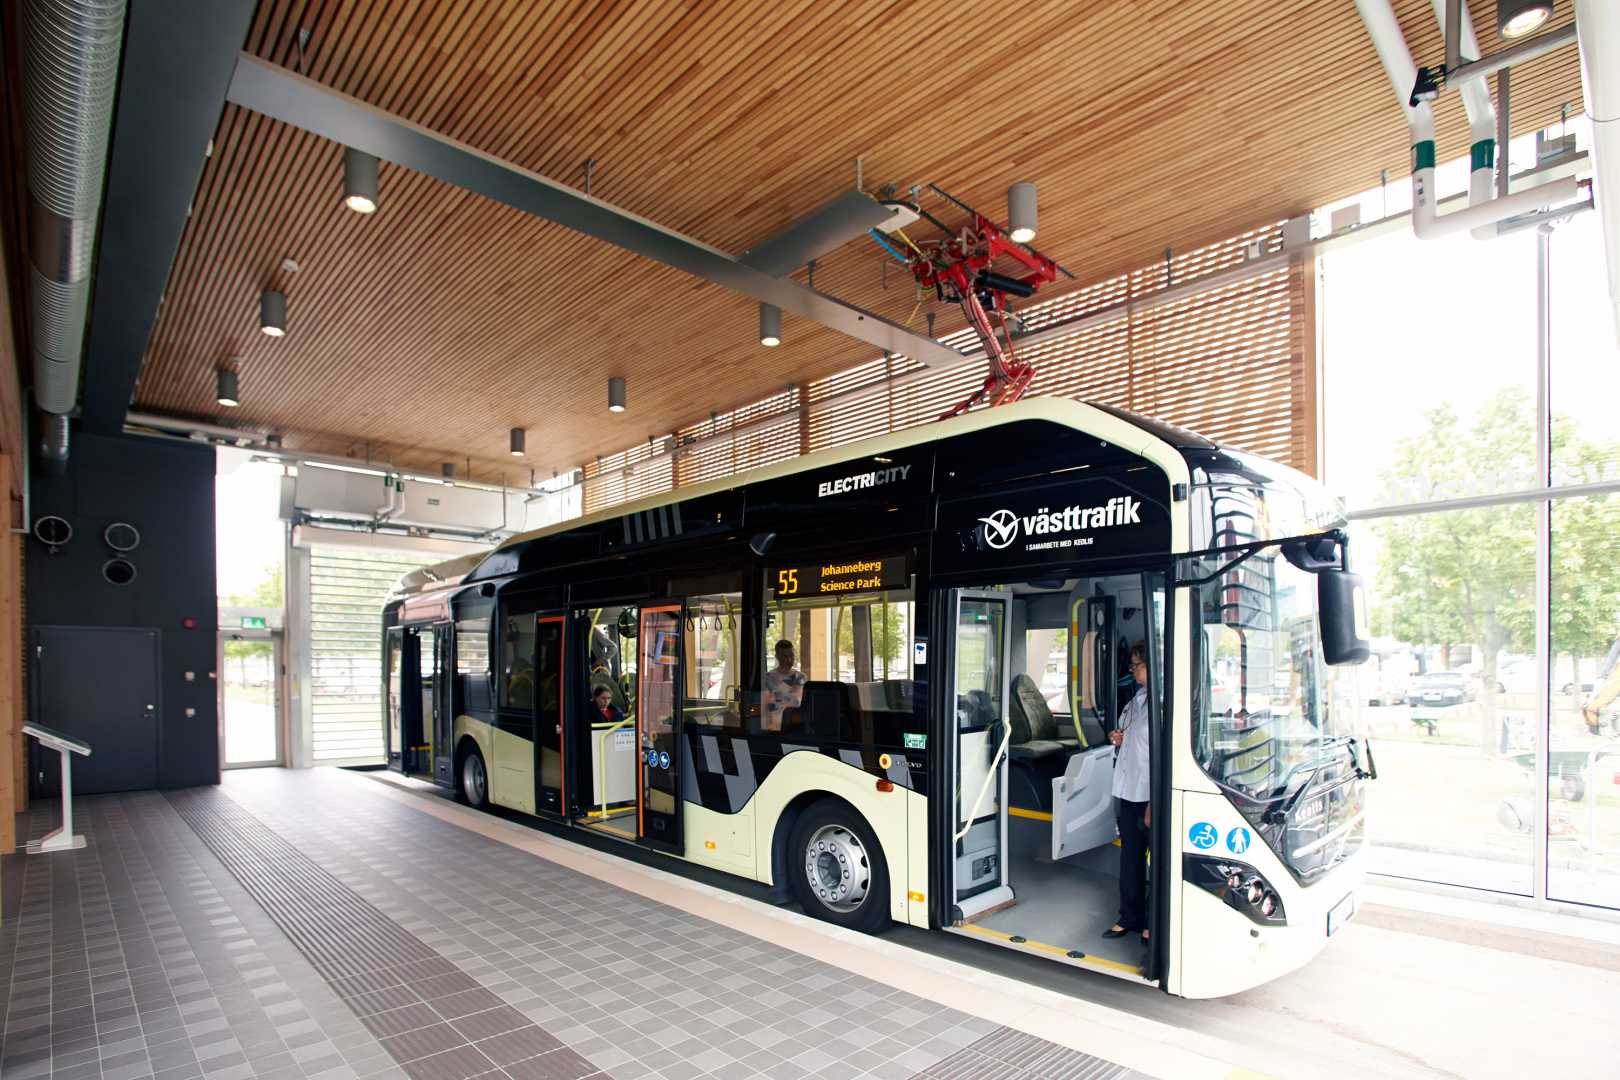 indoor-bus-stop-electricity1.jpg